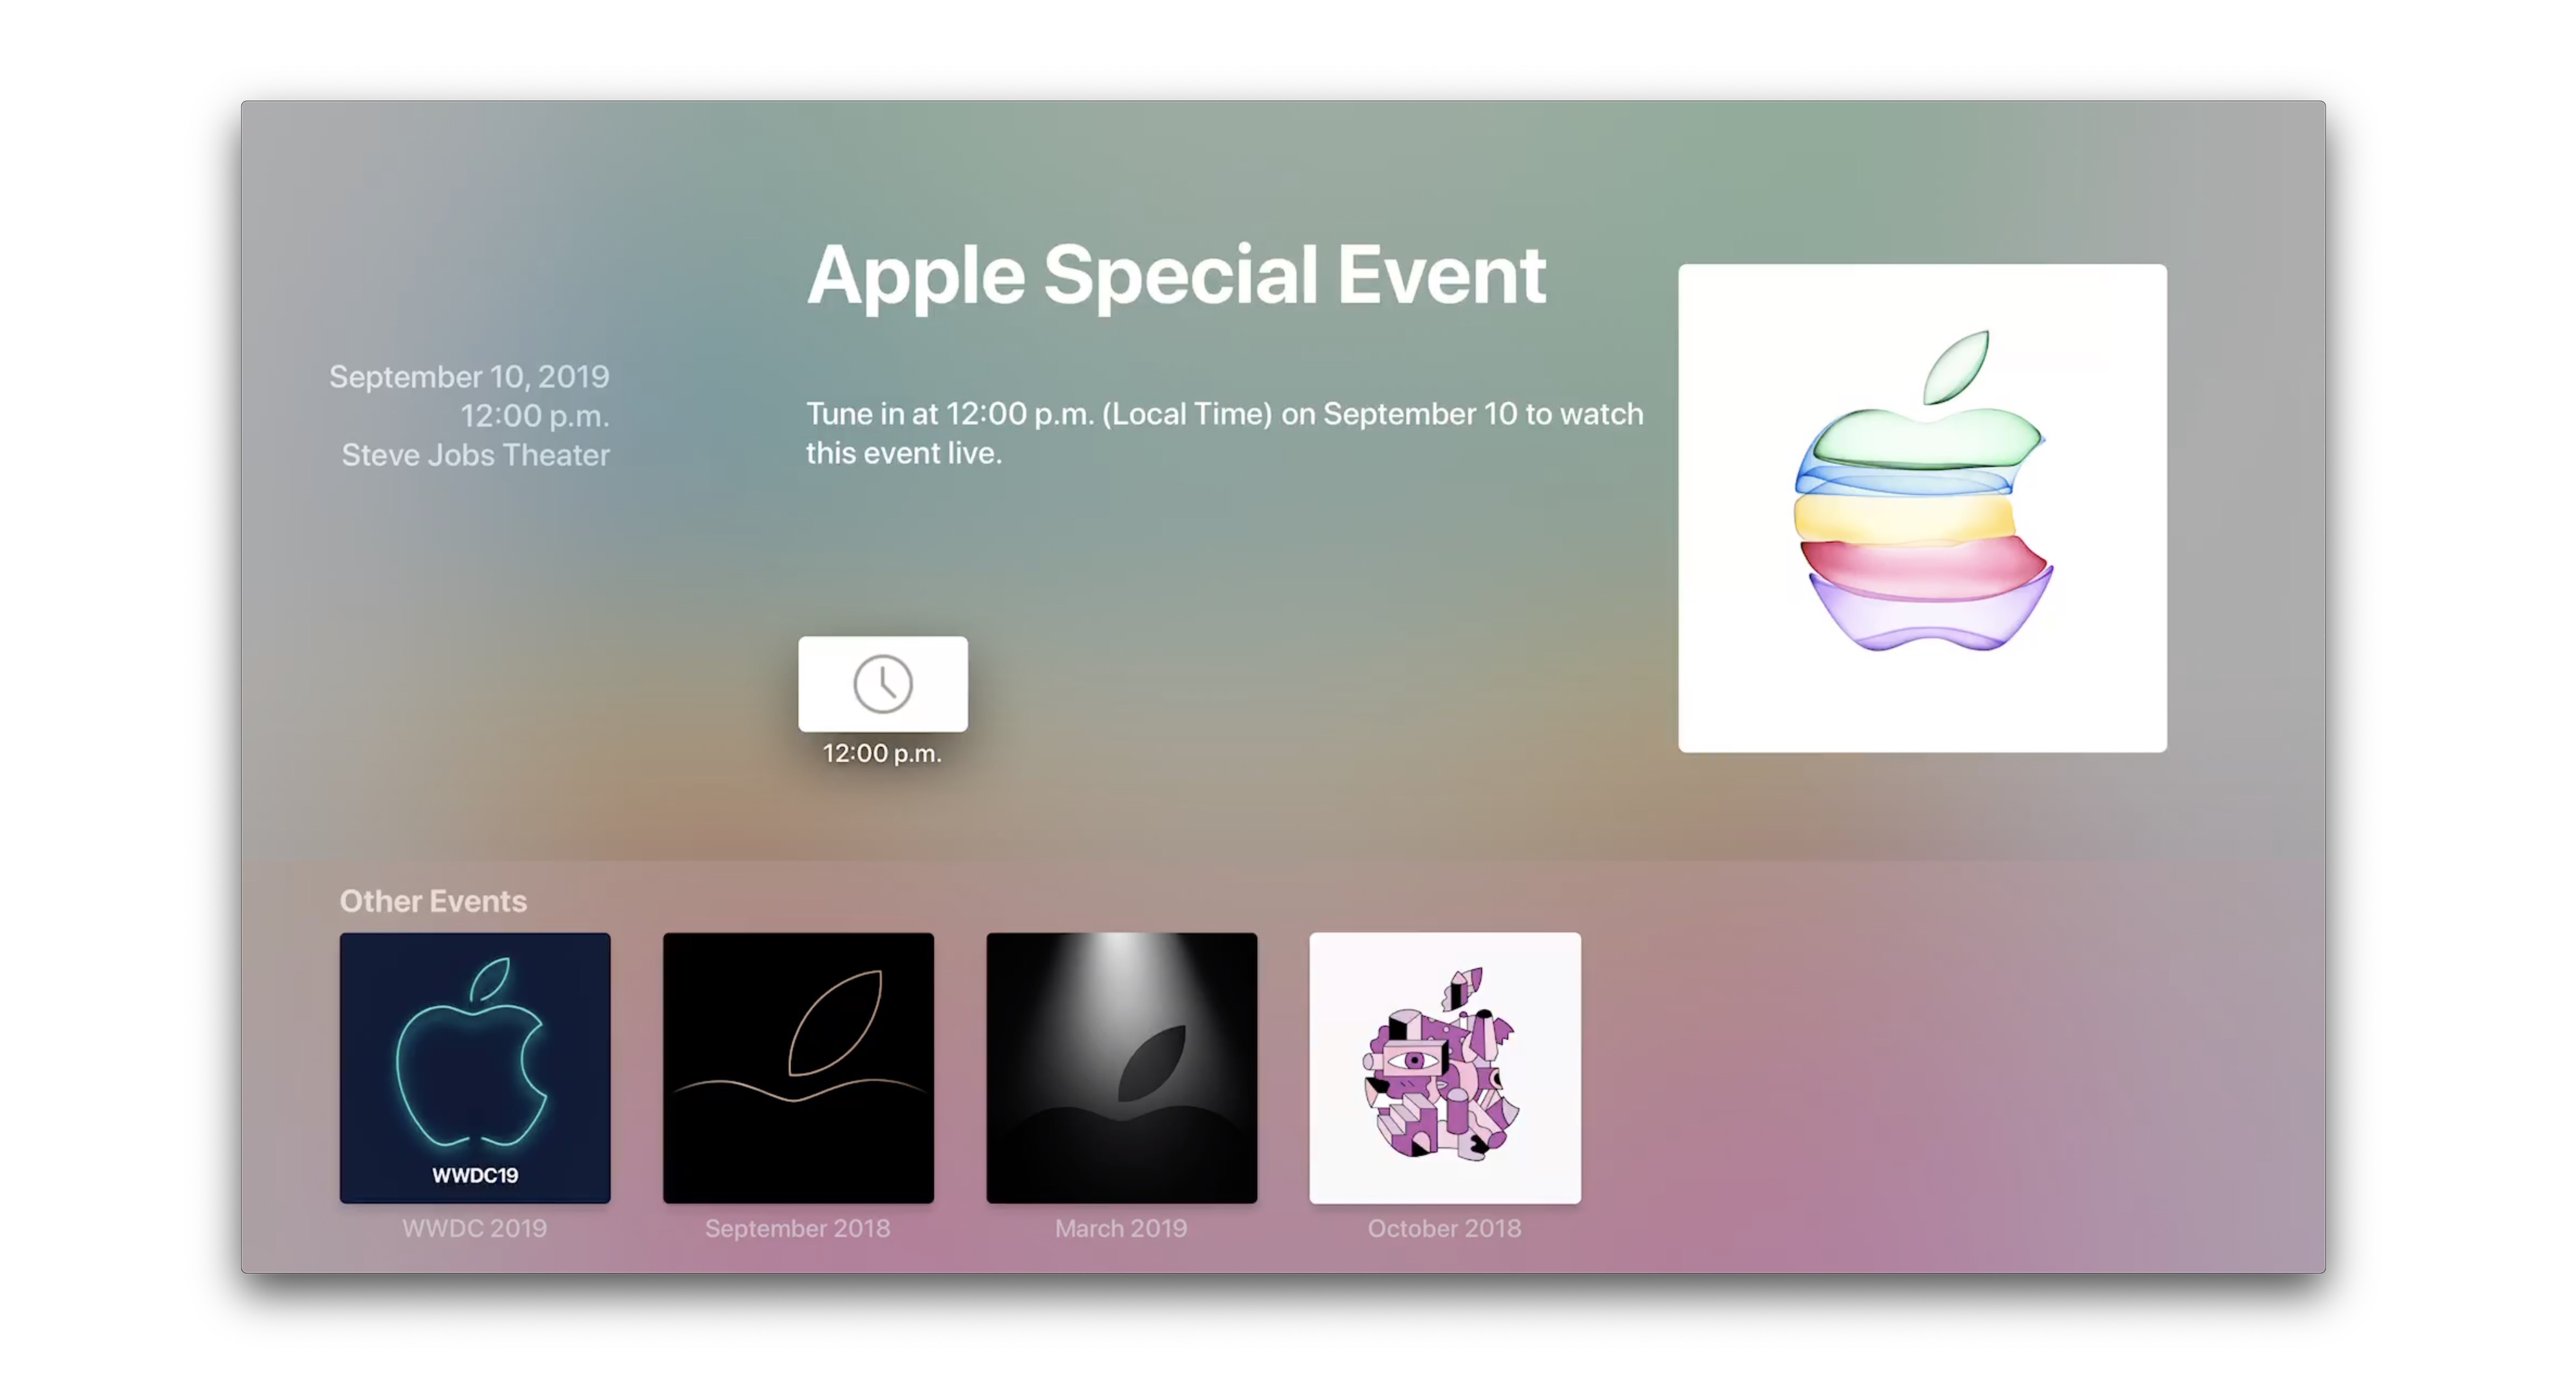 Apple Events App For Tvos Updated For Iphone 11 Event Stream 9to5mac